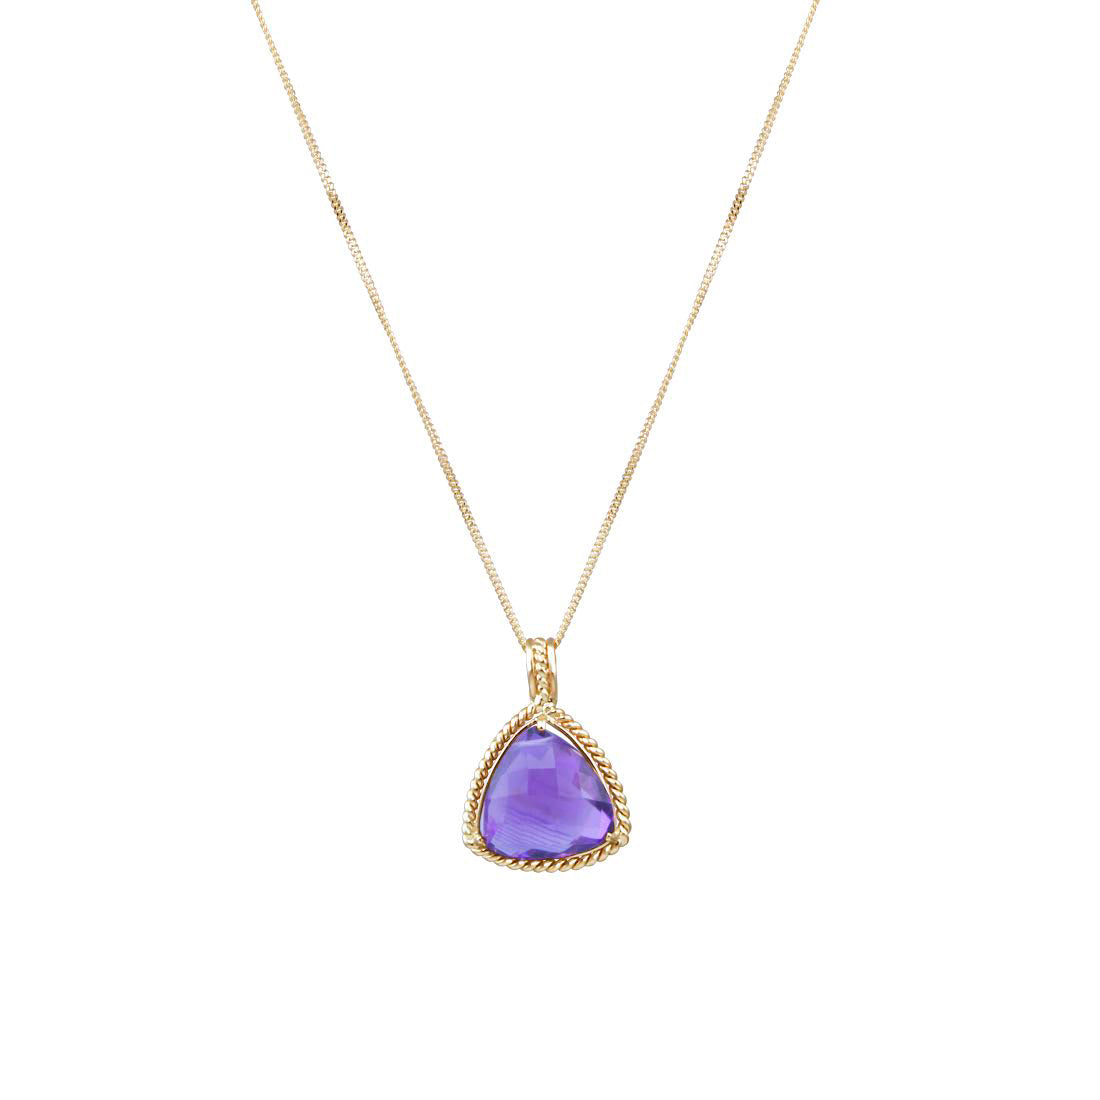 Trillion Shaped Amethyst Pendant, 14K Yellow Gold